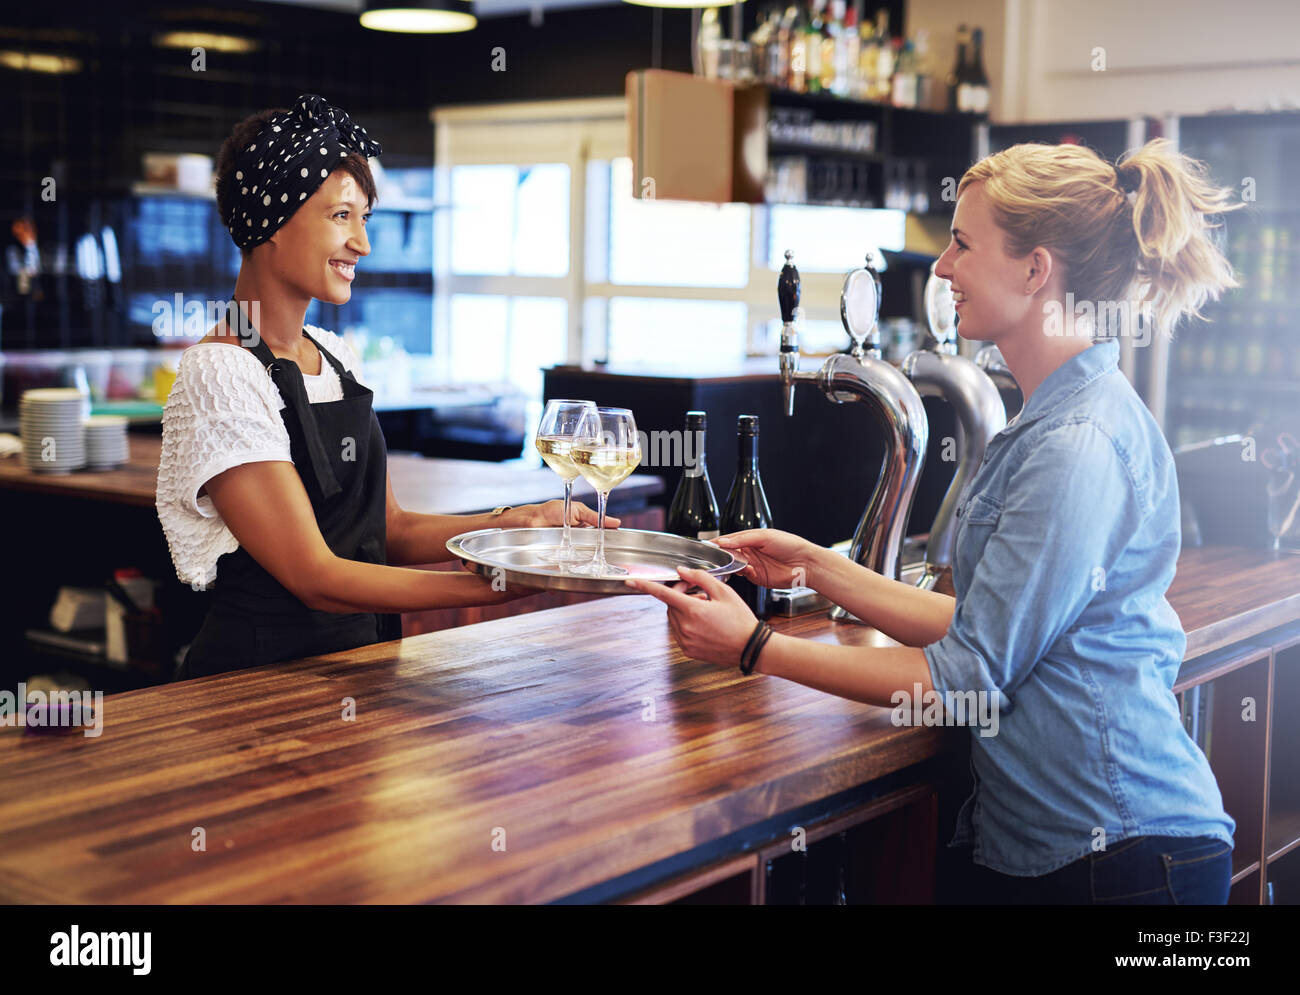 Smiling Waitress Giving Glasses of Wines on a Tray to a Female Customer at the Bar Counter. - Stock Image